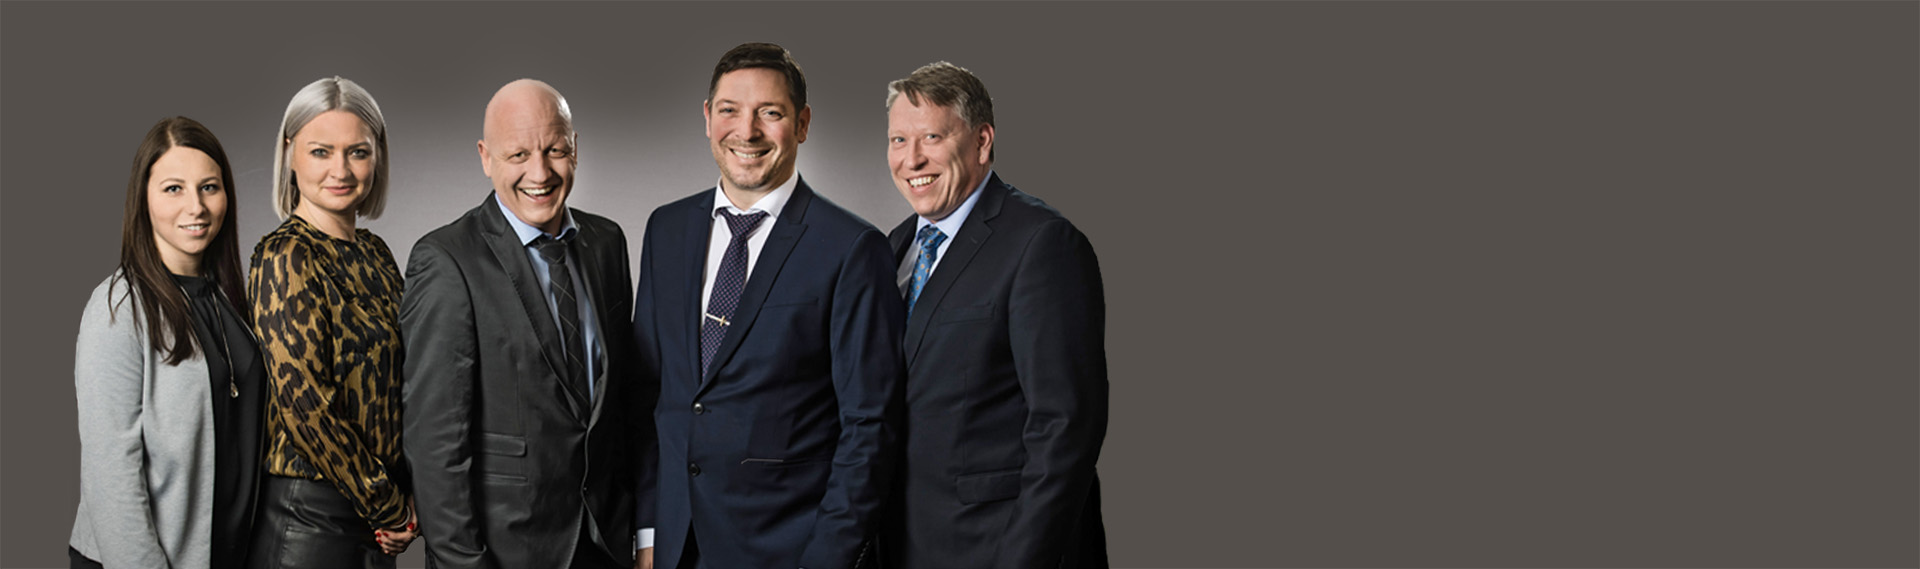 Generali Team: Andreas Mayrböck, Erwin Pichler, Richard Wimmer